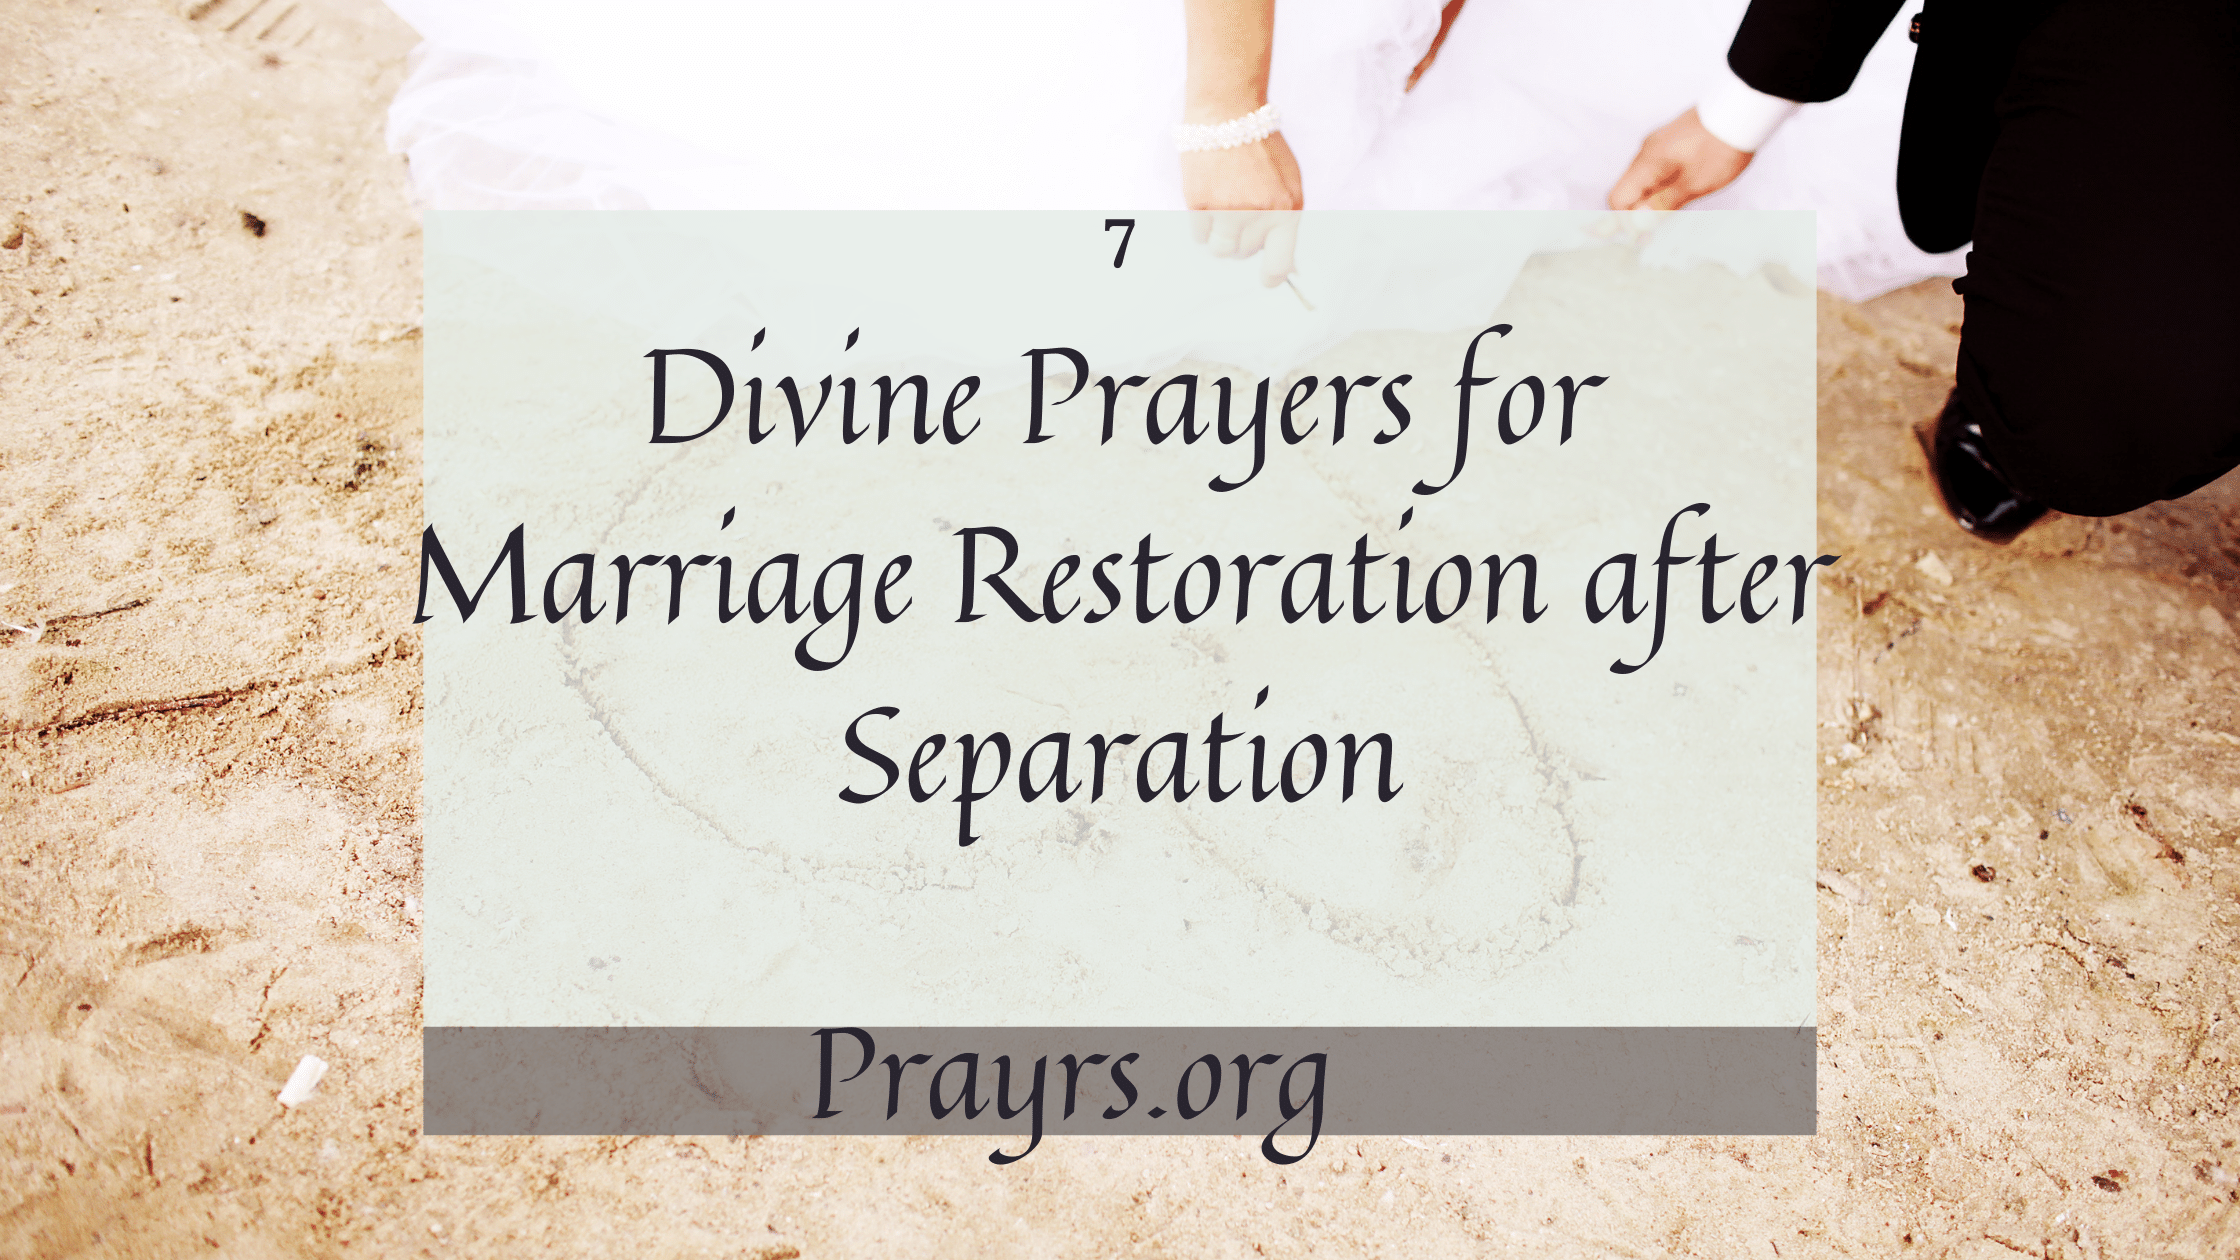 Prayers for Marriage Restoration after Separation